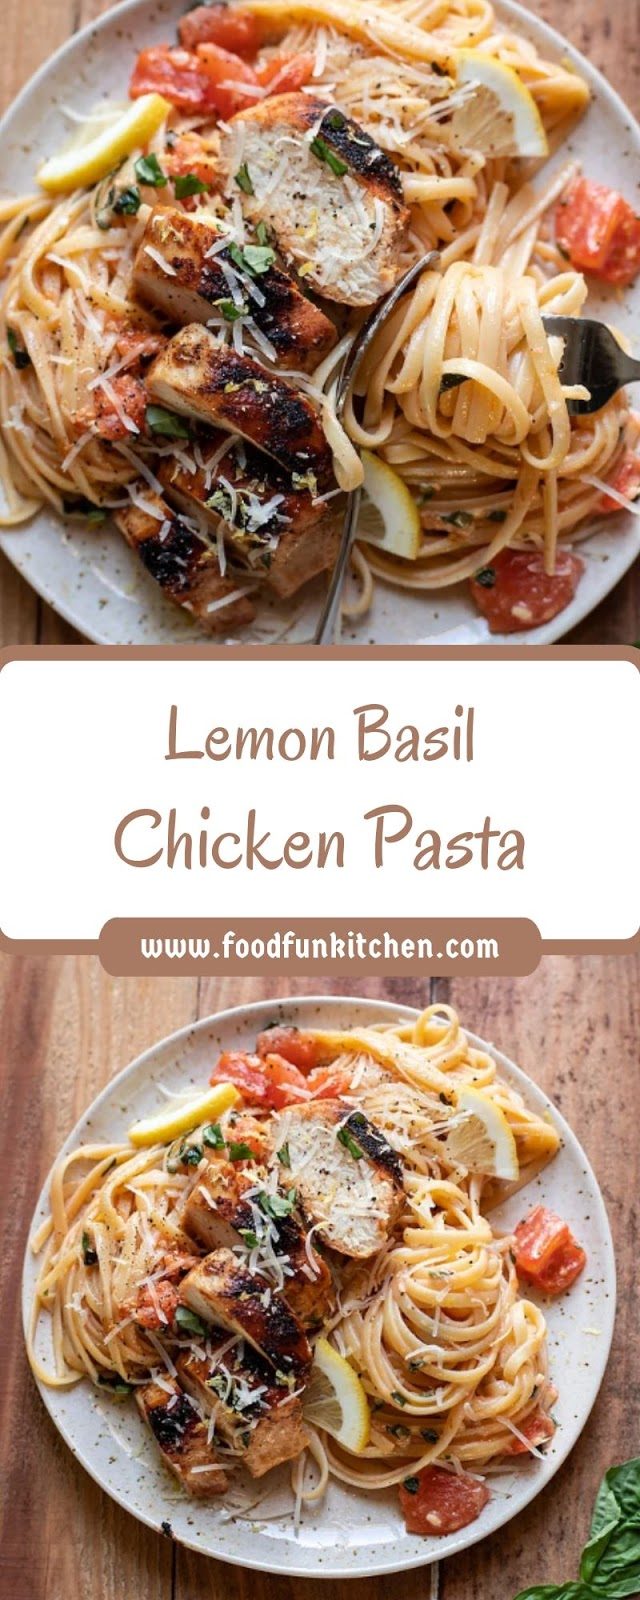 Lemon Basil Chicken Pasta